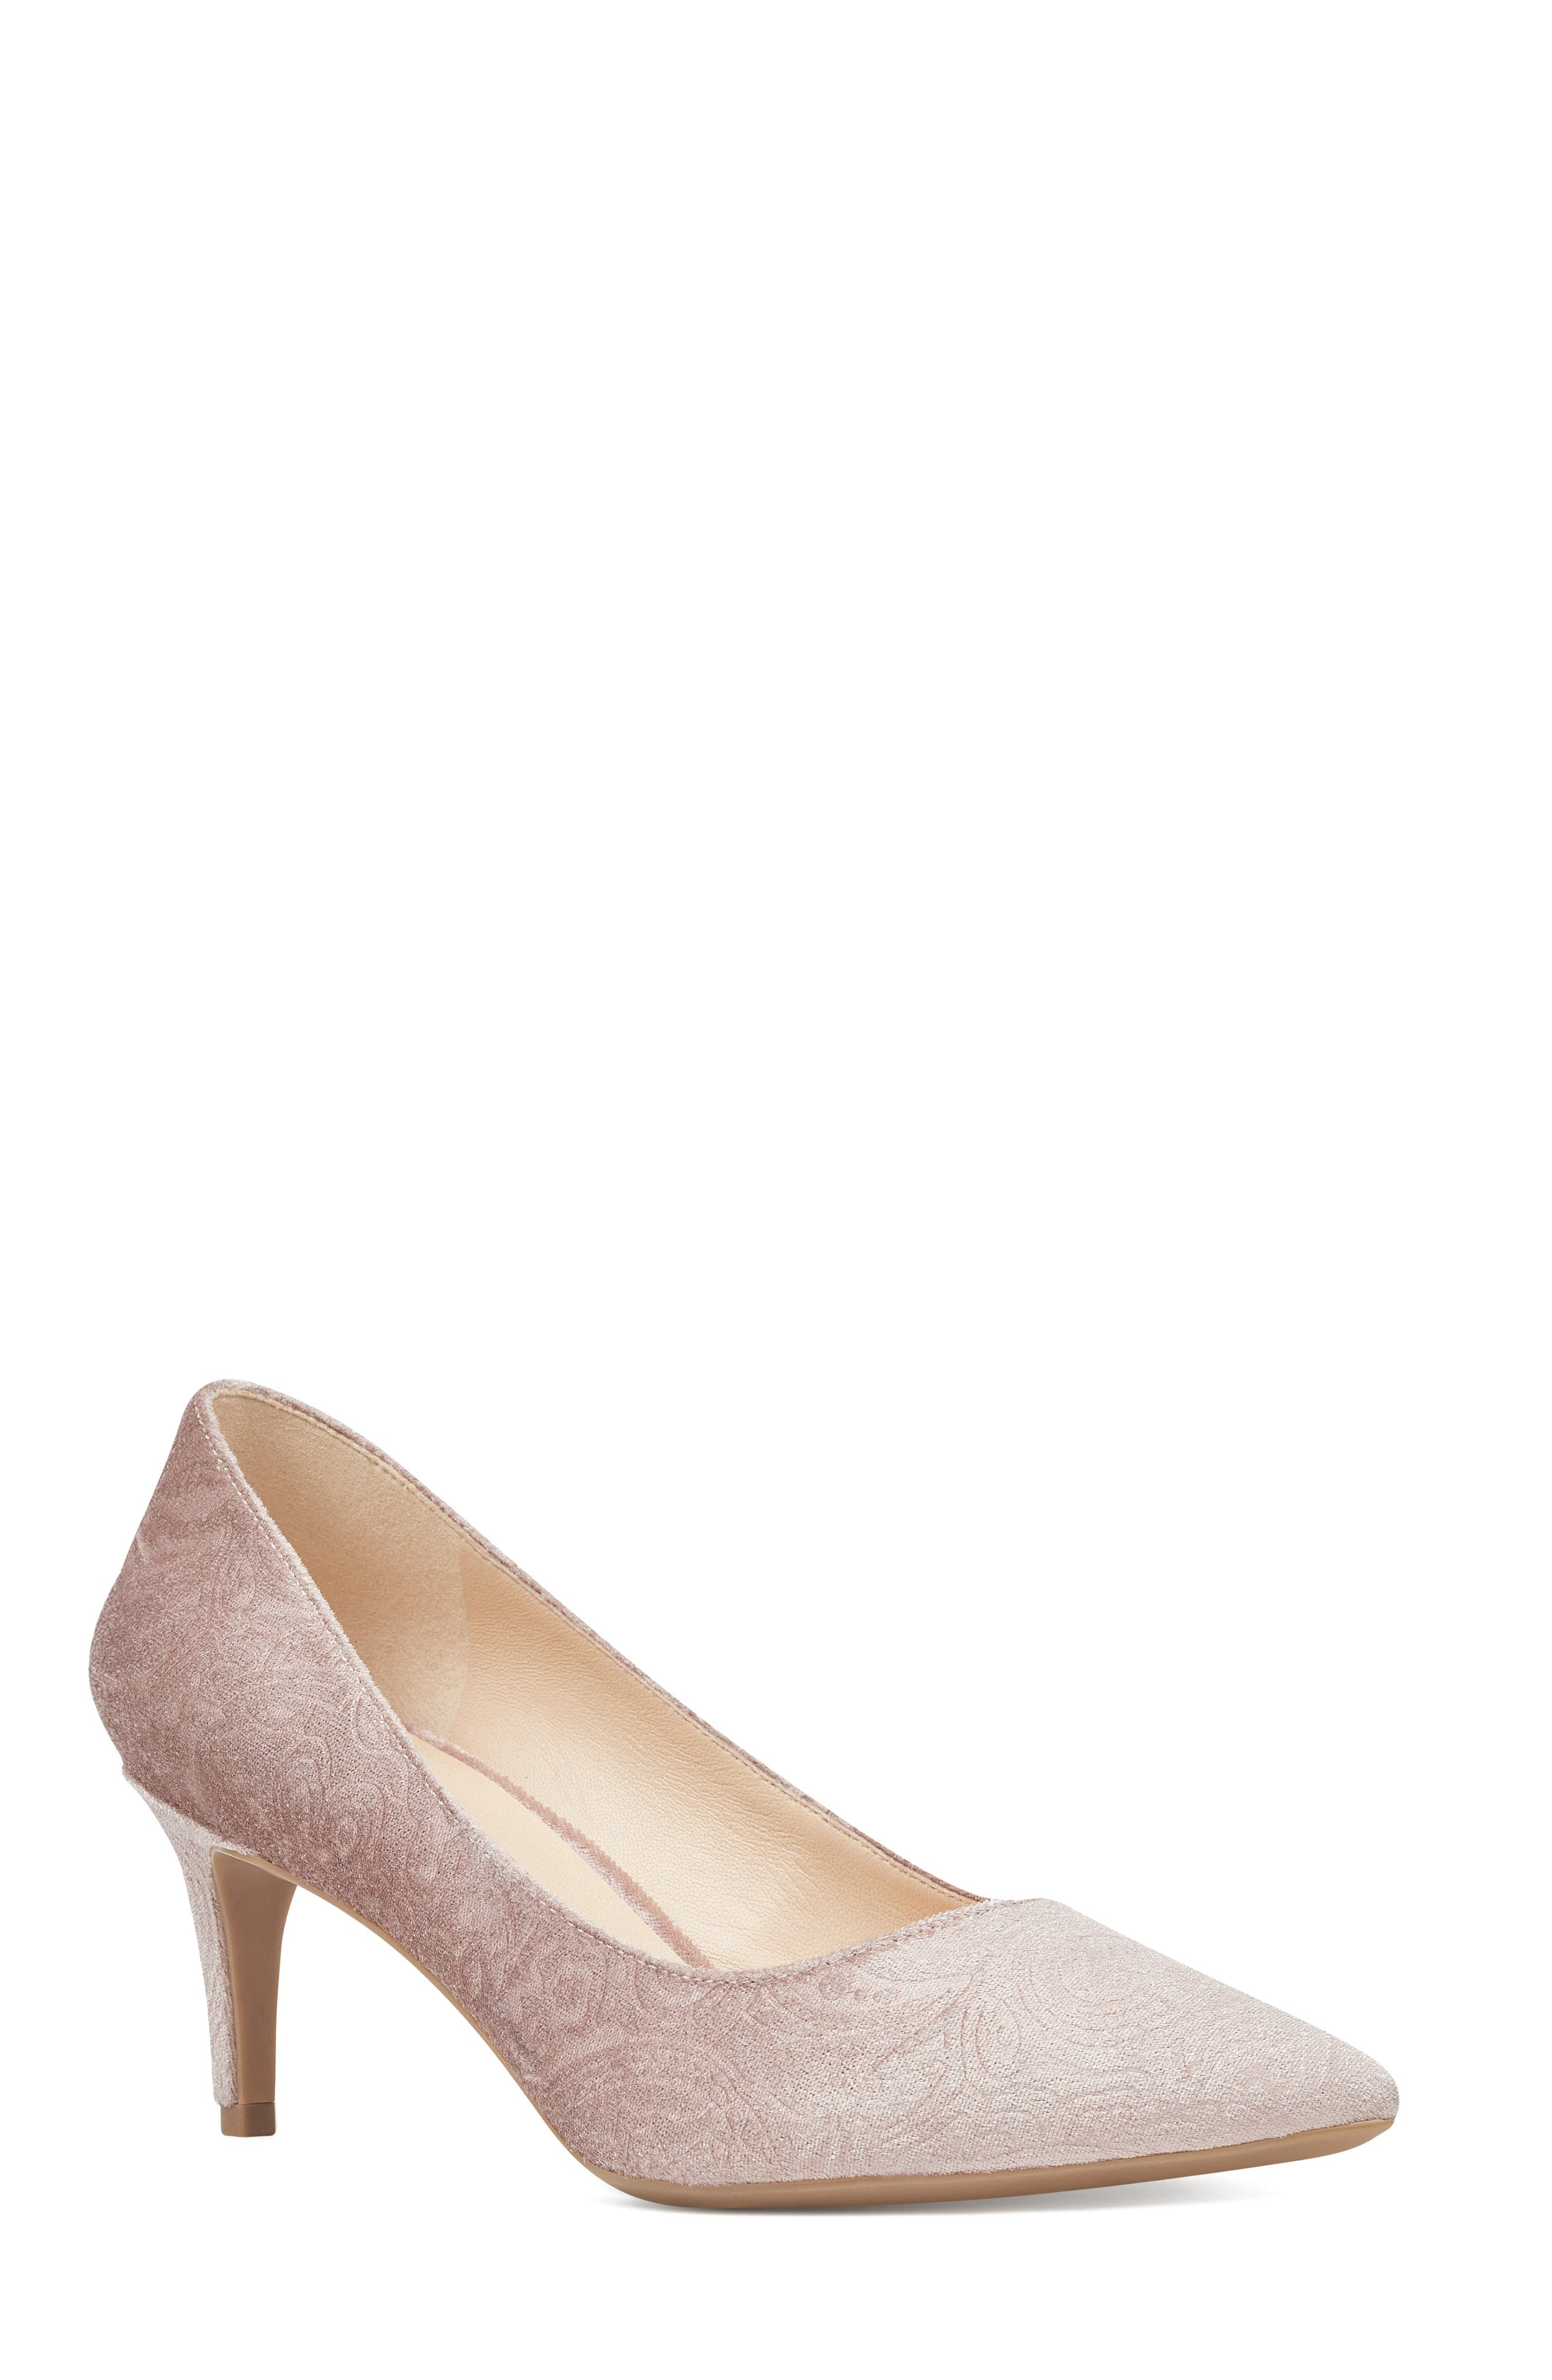 Soho Pointy Toe Pump,                             Main thumbnail 2, color,